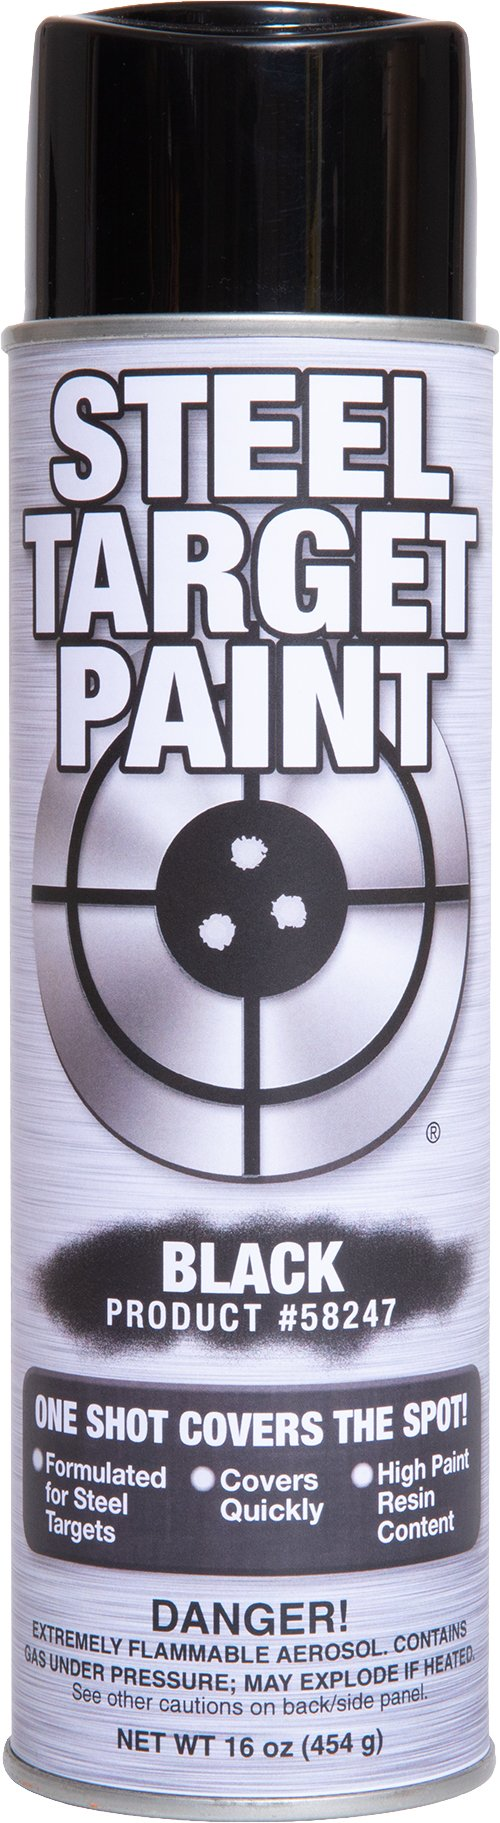 Steel Target Paint- 16 oz Aerosol Paint in a Can for Shooting Ranges, Shooting Clubs, Parks and Private Ranges and for Match Competition (Black, 6 Pack)